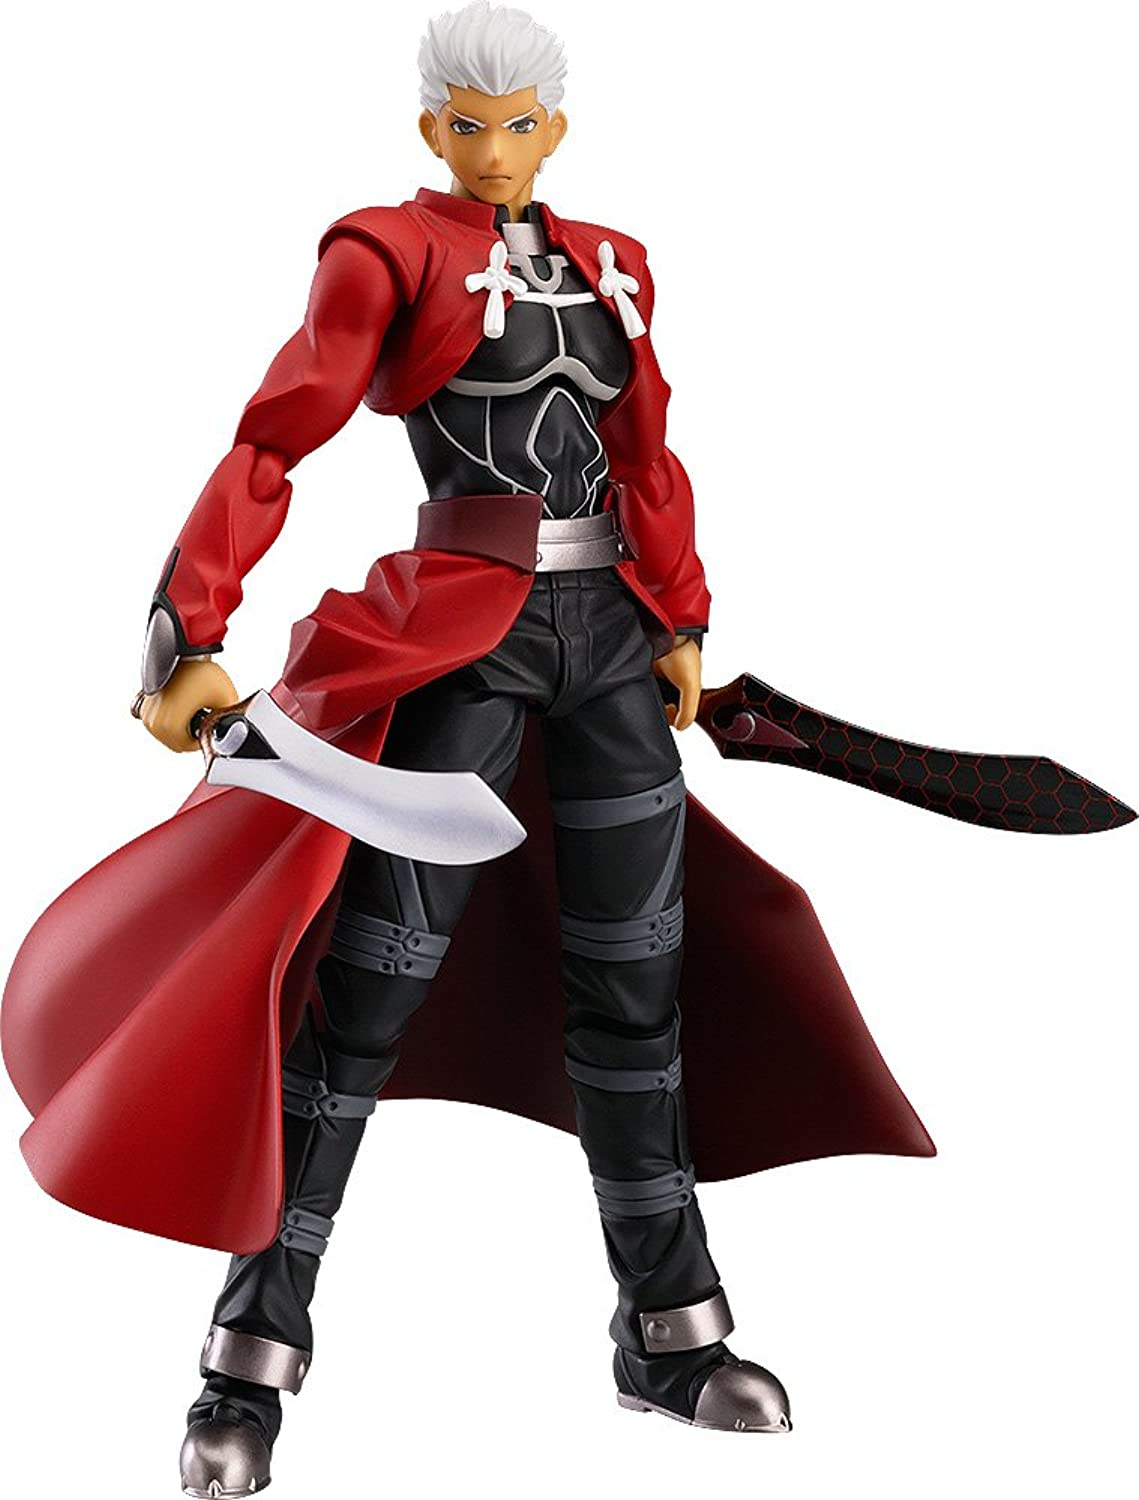 Figma Fate stay Night Archer Not To Scale Made In Prepainted Pvc Figure Reseller